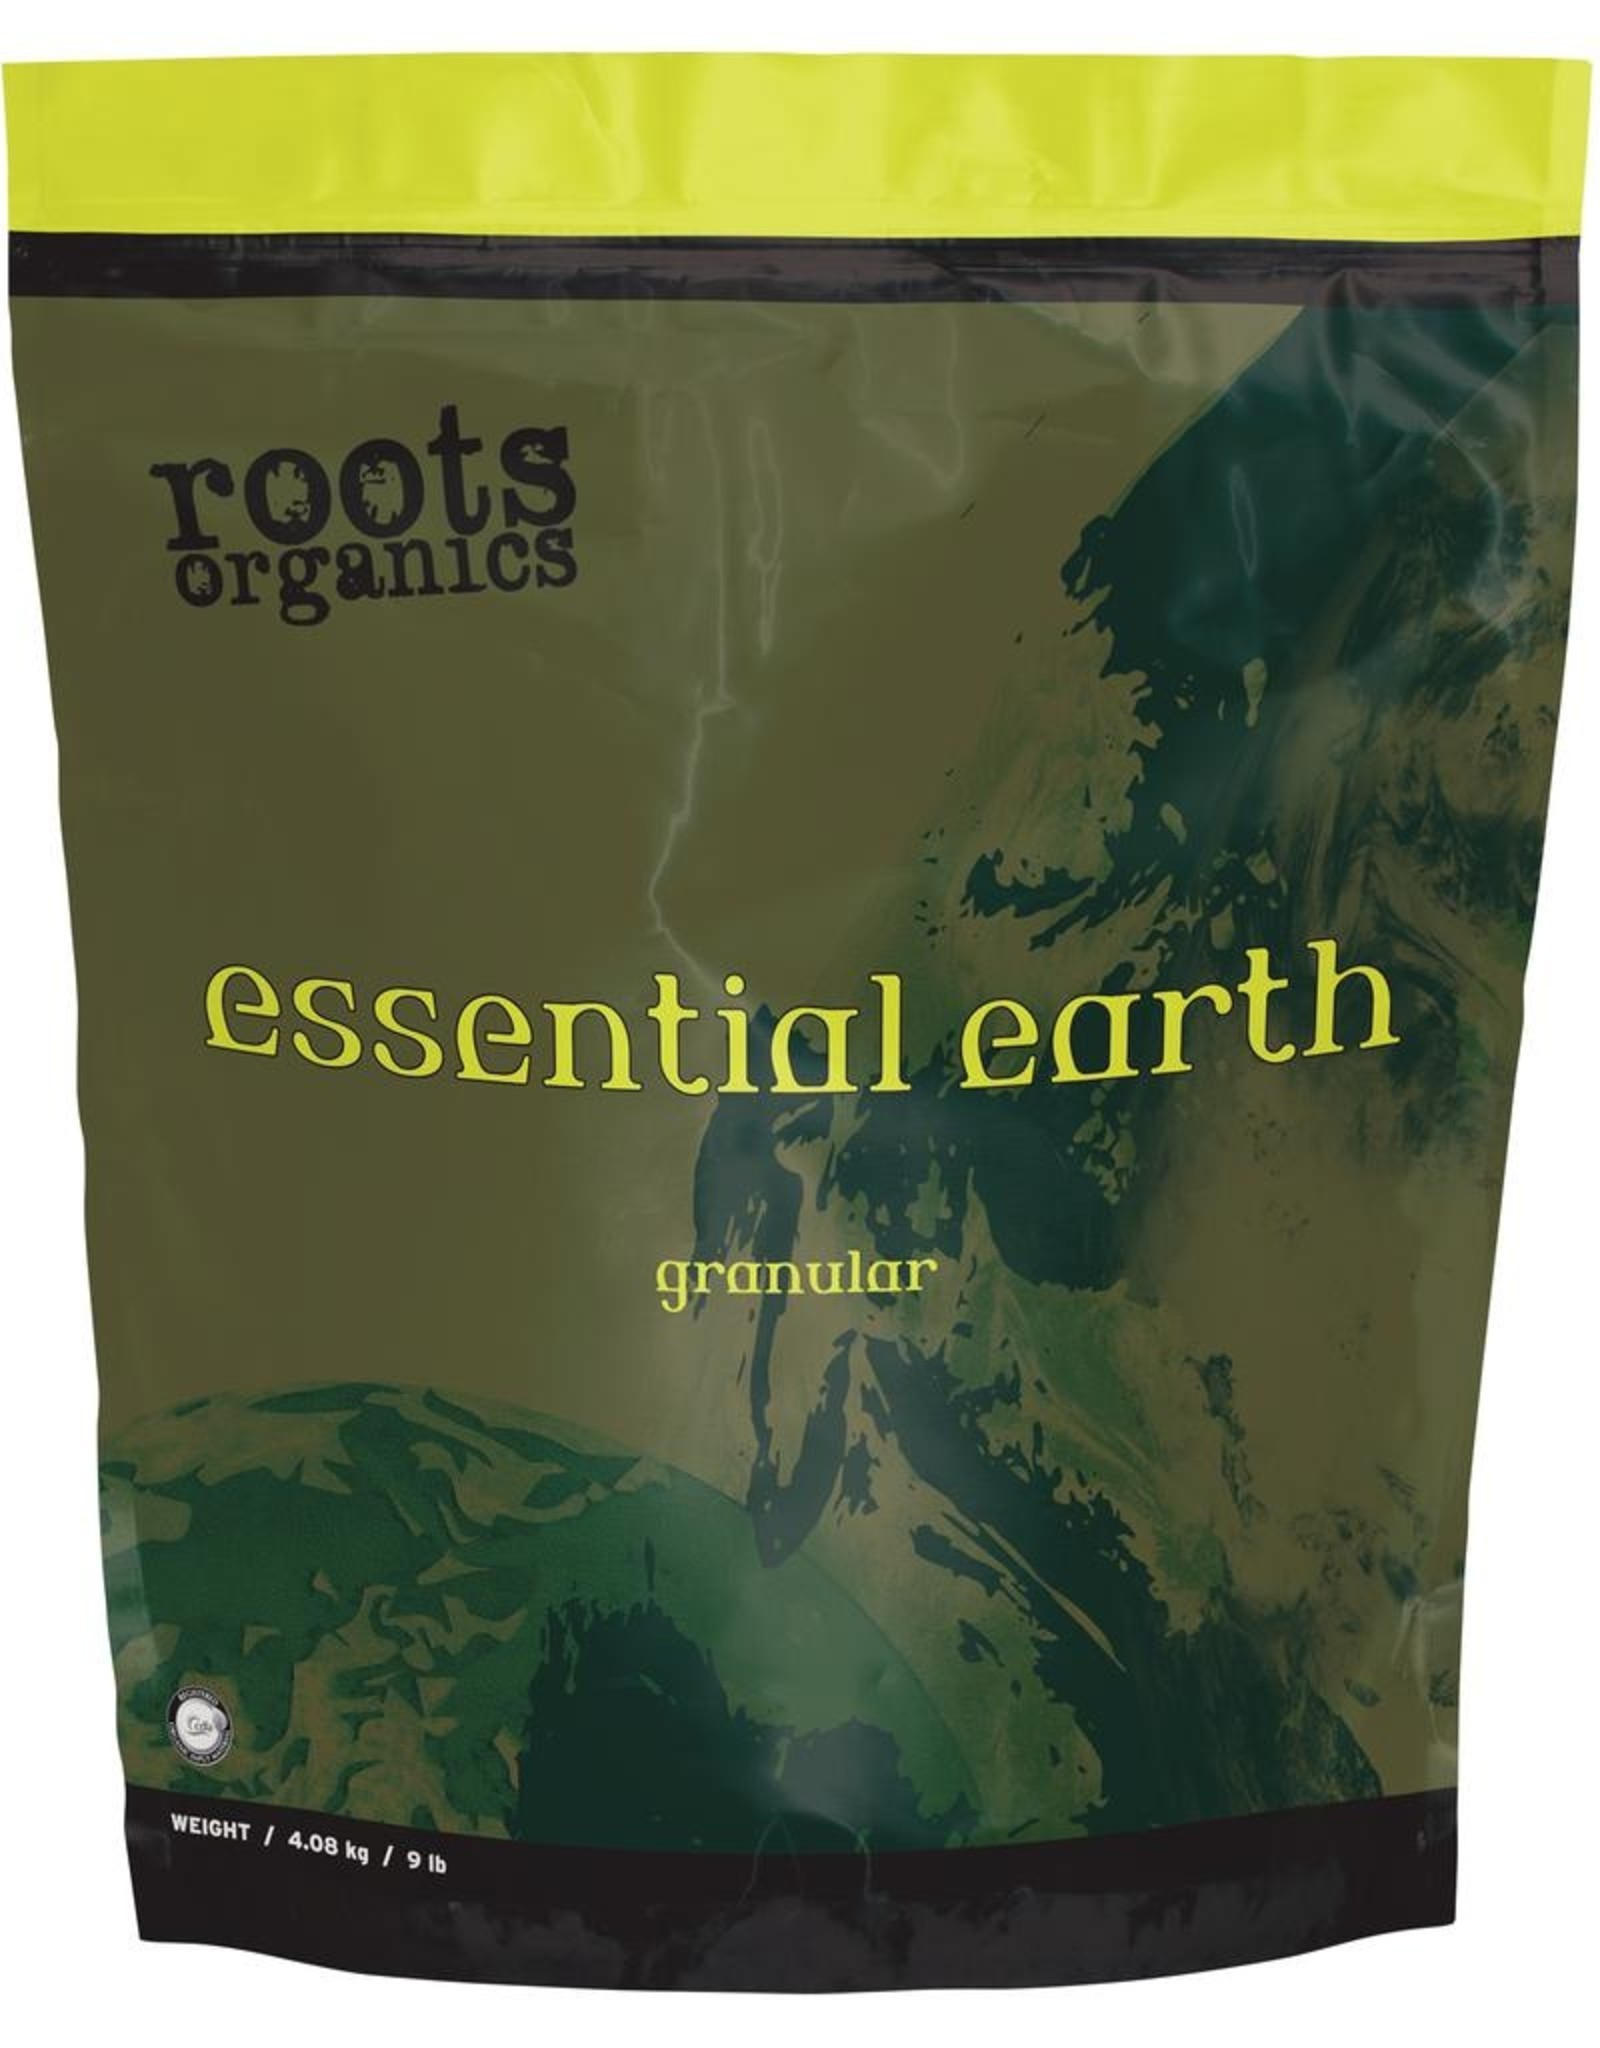 AURORA INNOVATIONS Roots Organics Essential Earth Granular 9 lb